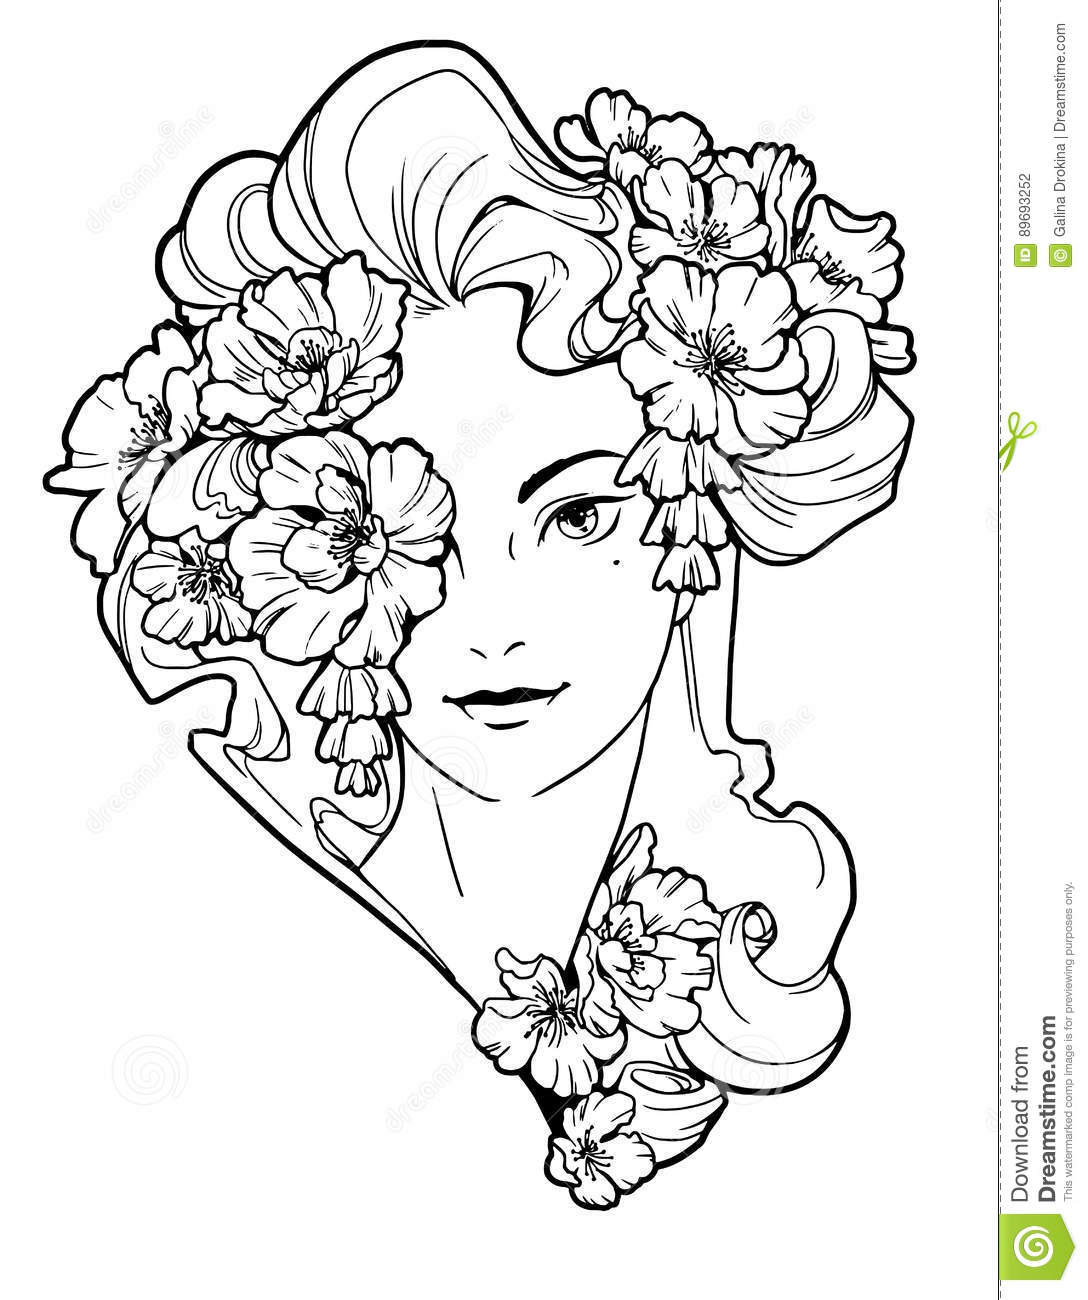 Illustration Of Woman With Flowers In Her Hair Stock